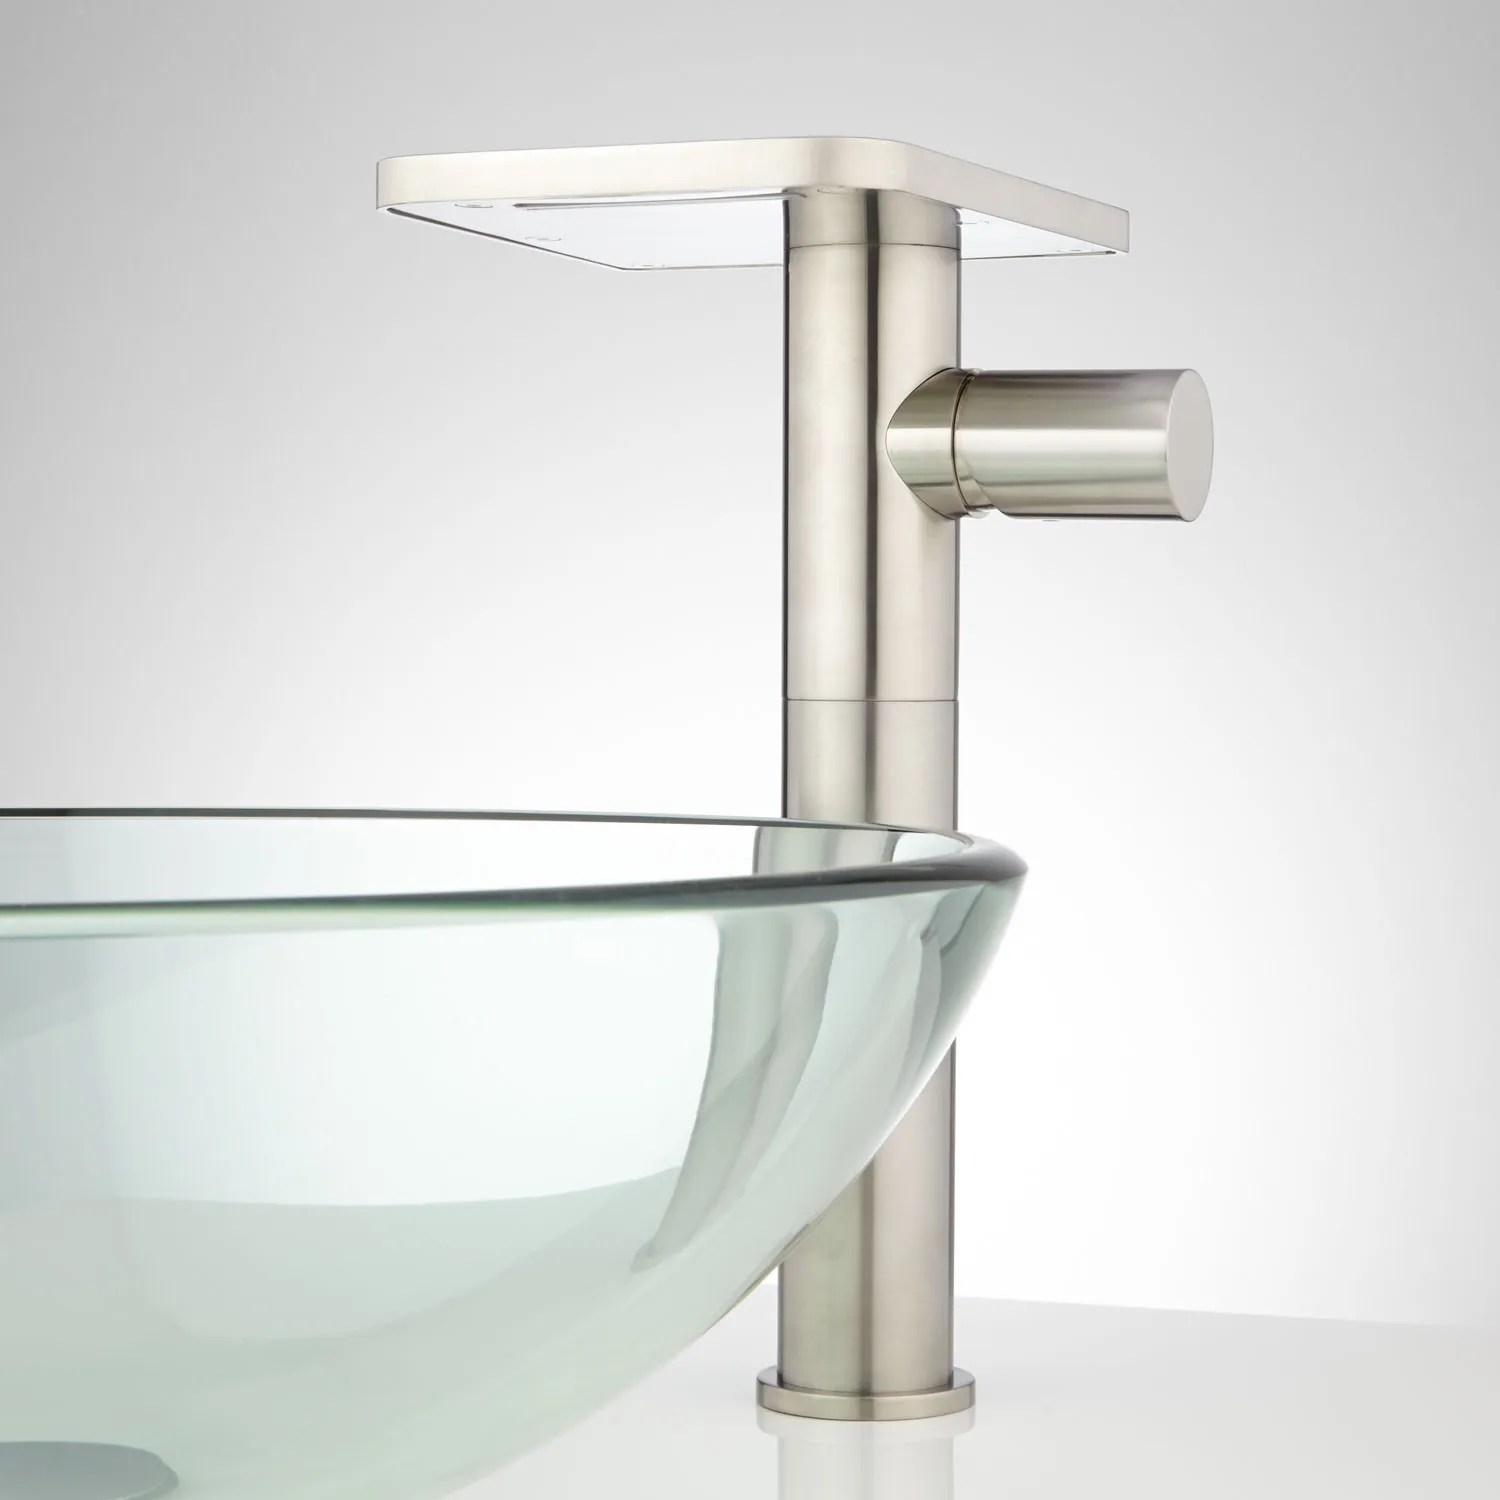 kitchen pulls coffee themed items knox waterfall vessel faucet with pop-up drain - bathroom